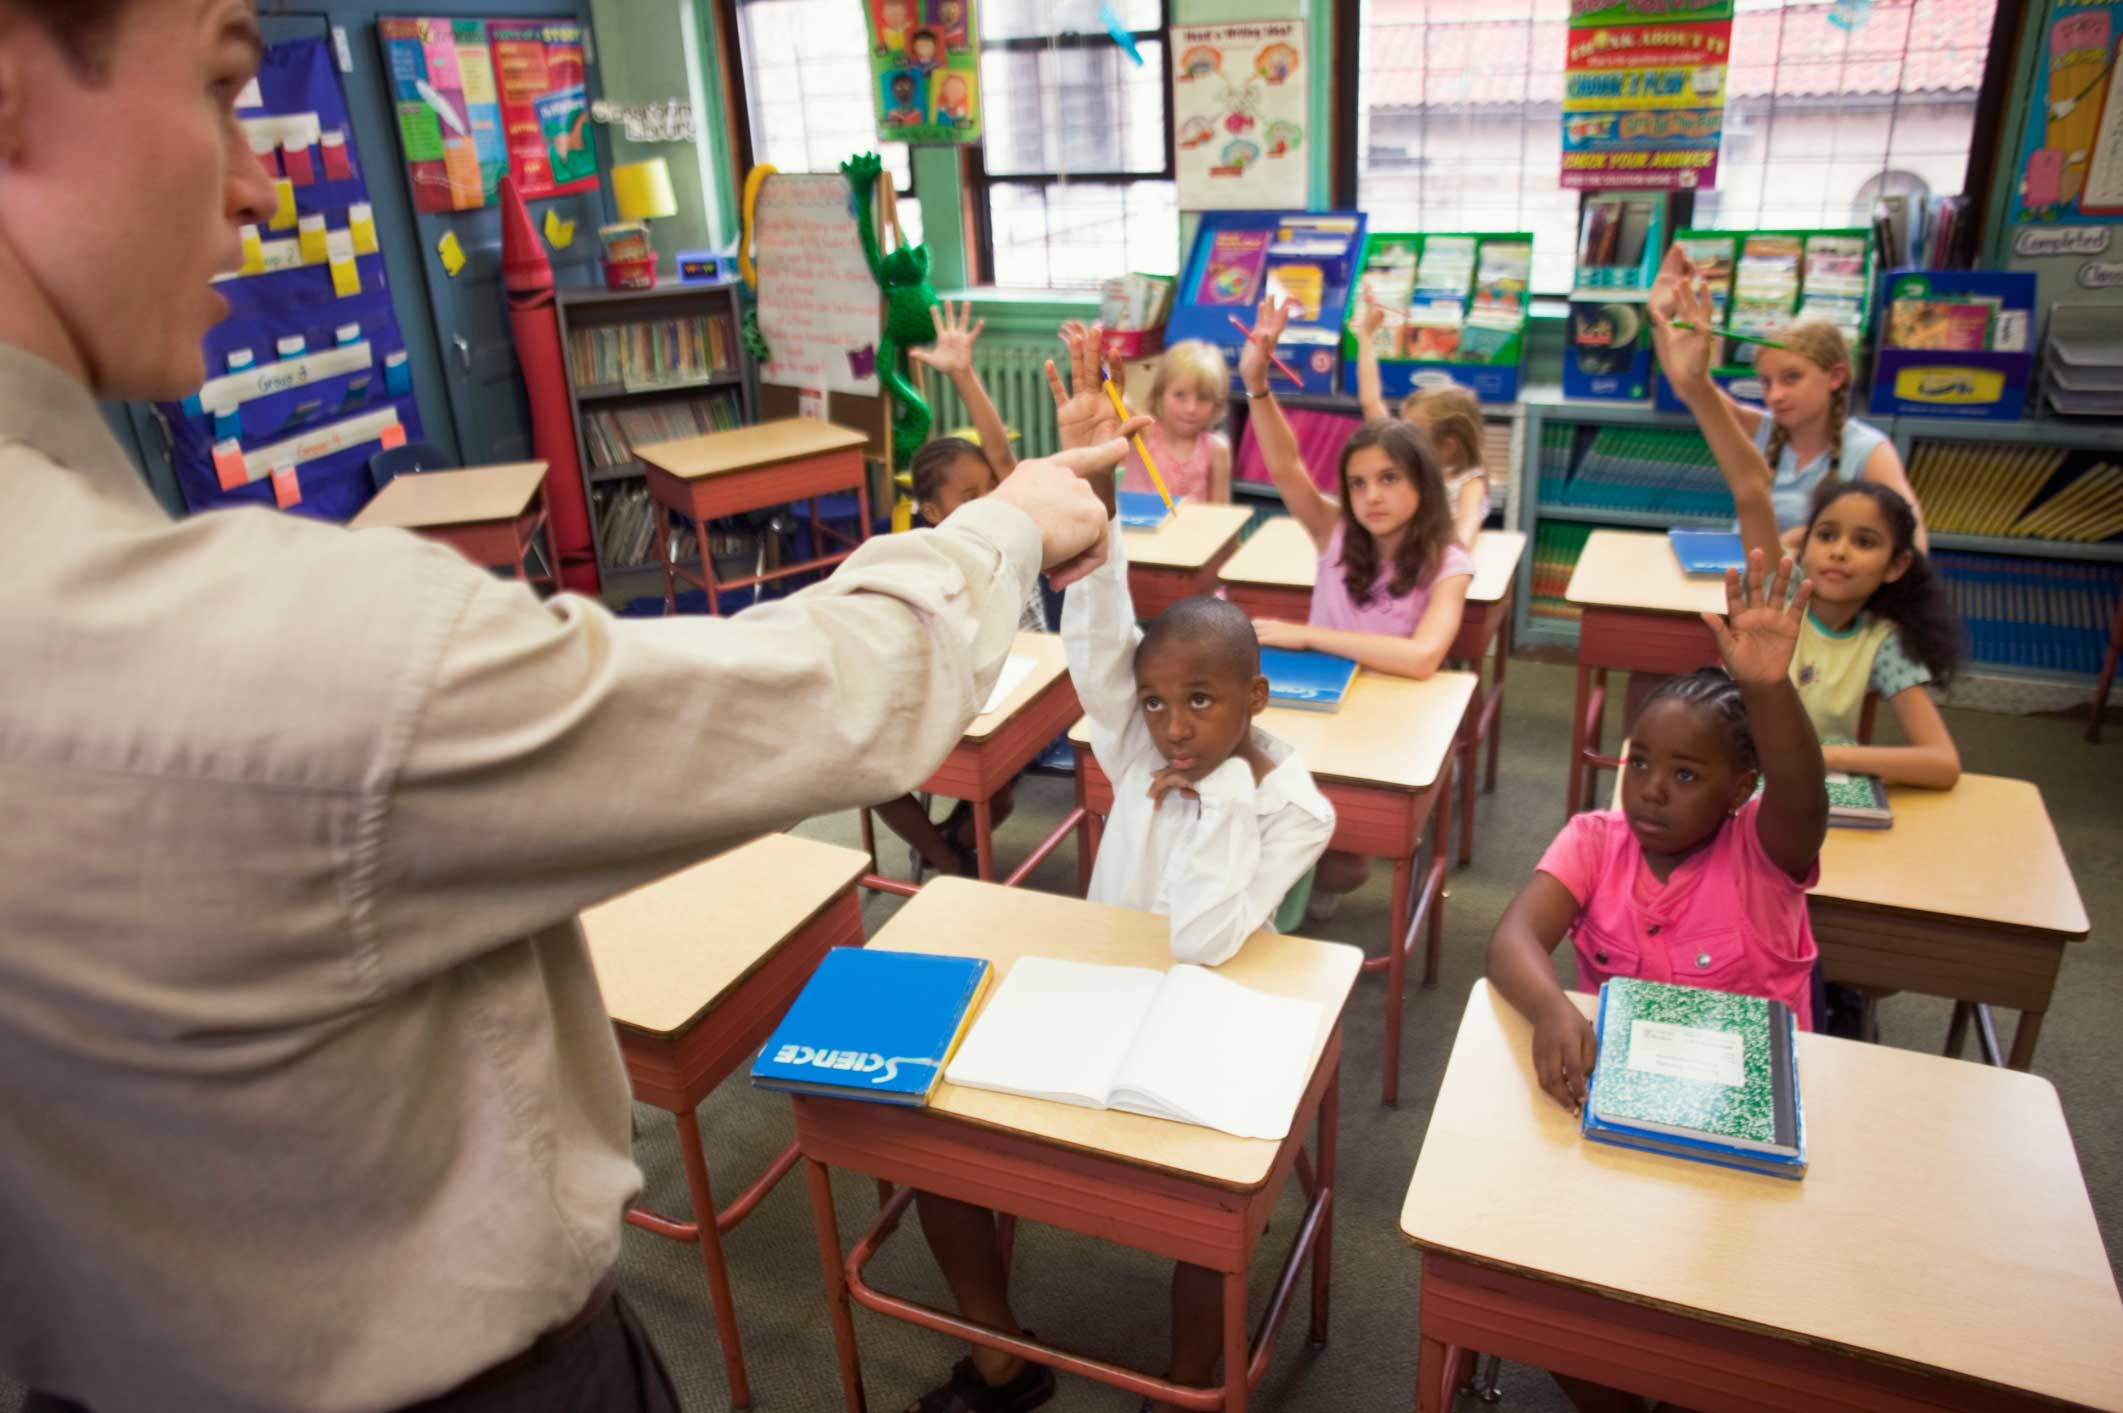 Kids-raising-hands-in-class-camera-from-front-of-class-2123x1413